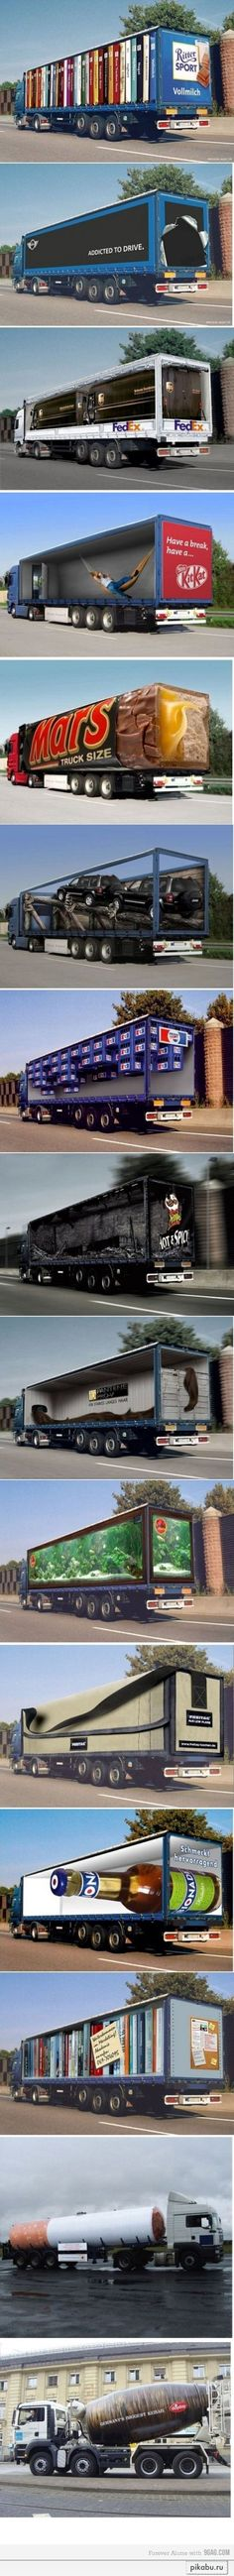 truck branding- would love to see these driving down the road